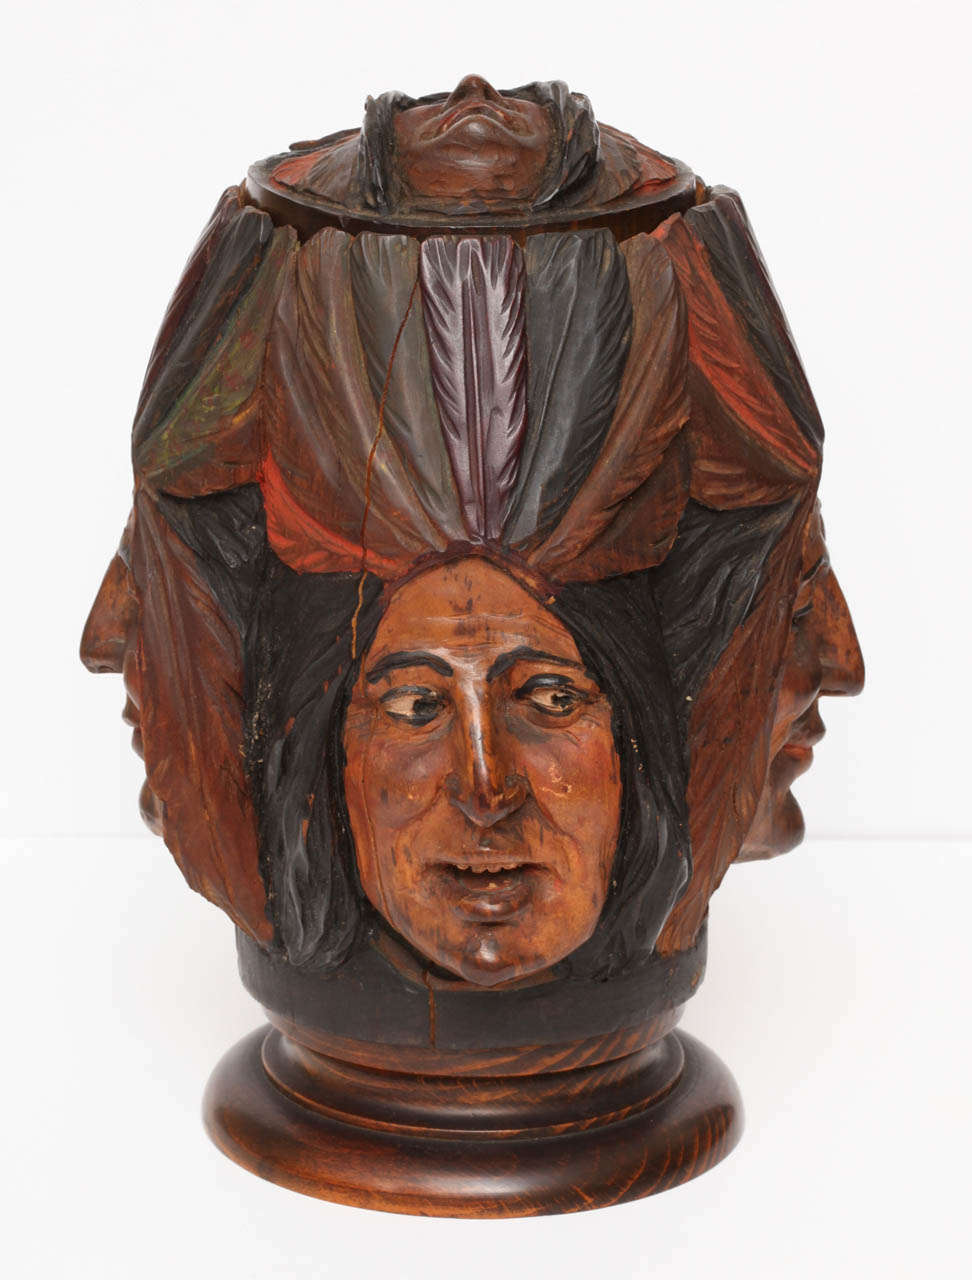 Various hand-carved Indian Chief faces adorn the sides of this tobacco jar. Very detailed with interesting facial expressions and each wearing a colorful feather headdress. Fitted with a lidded top which also has an Indian face carved onto the